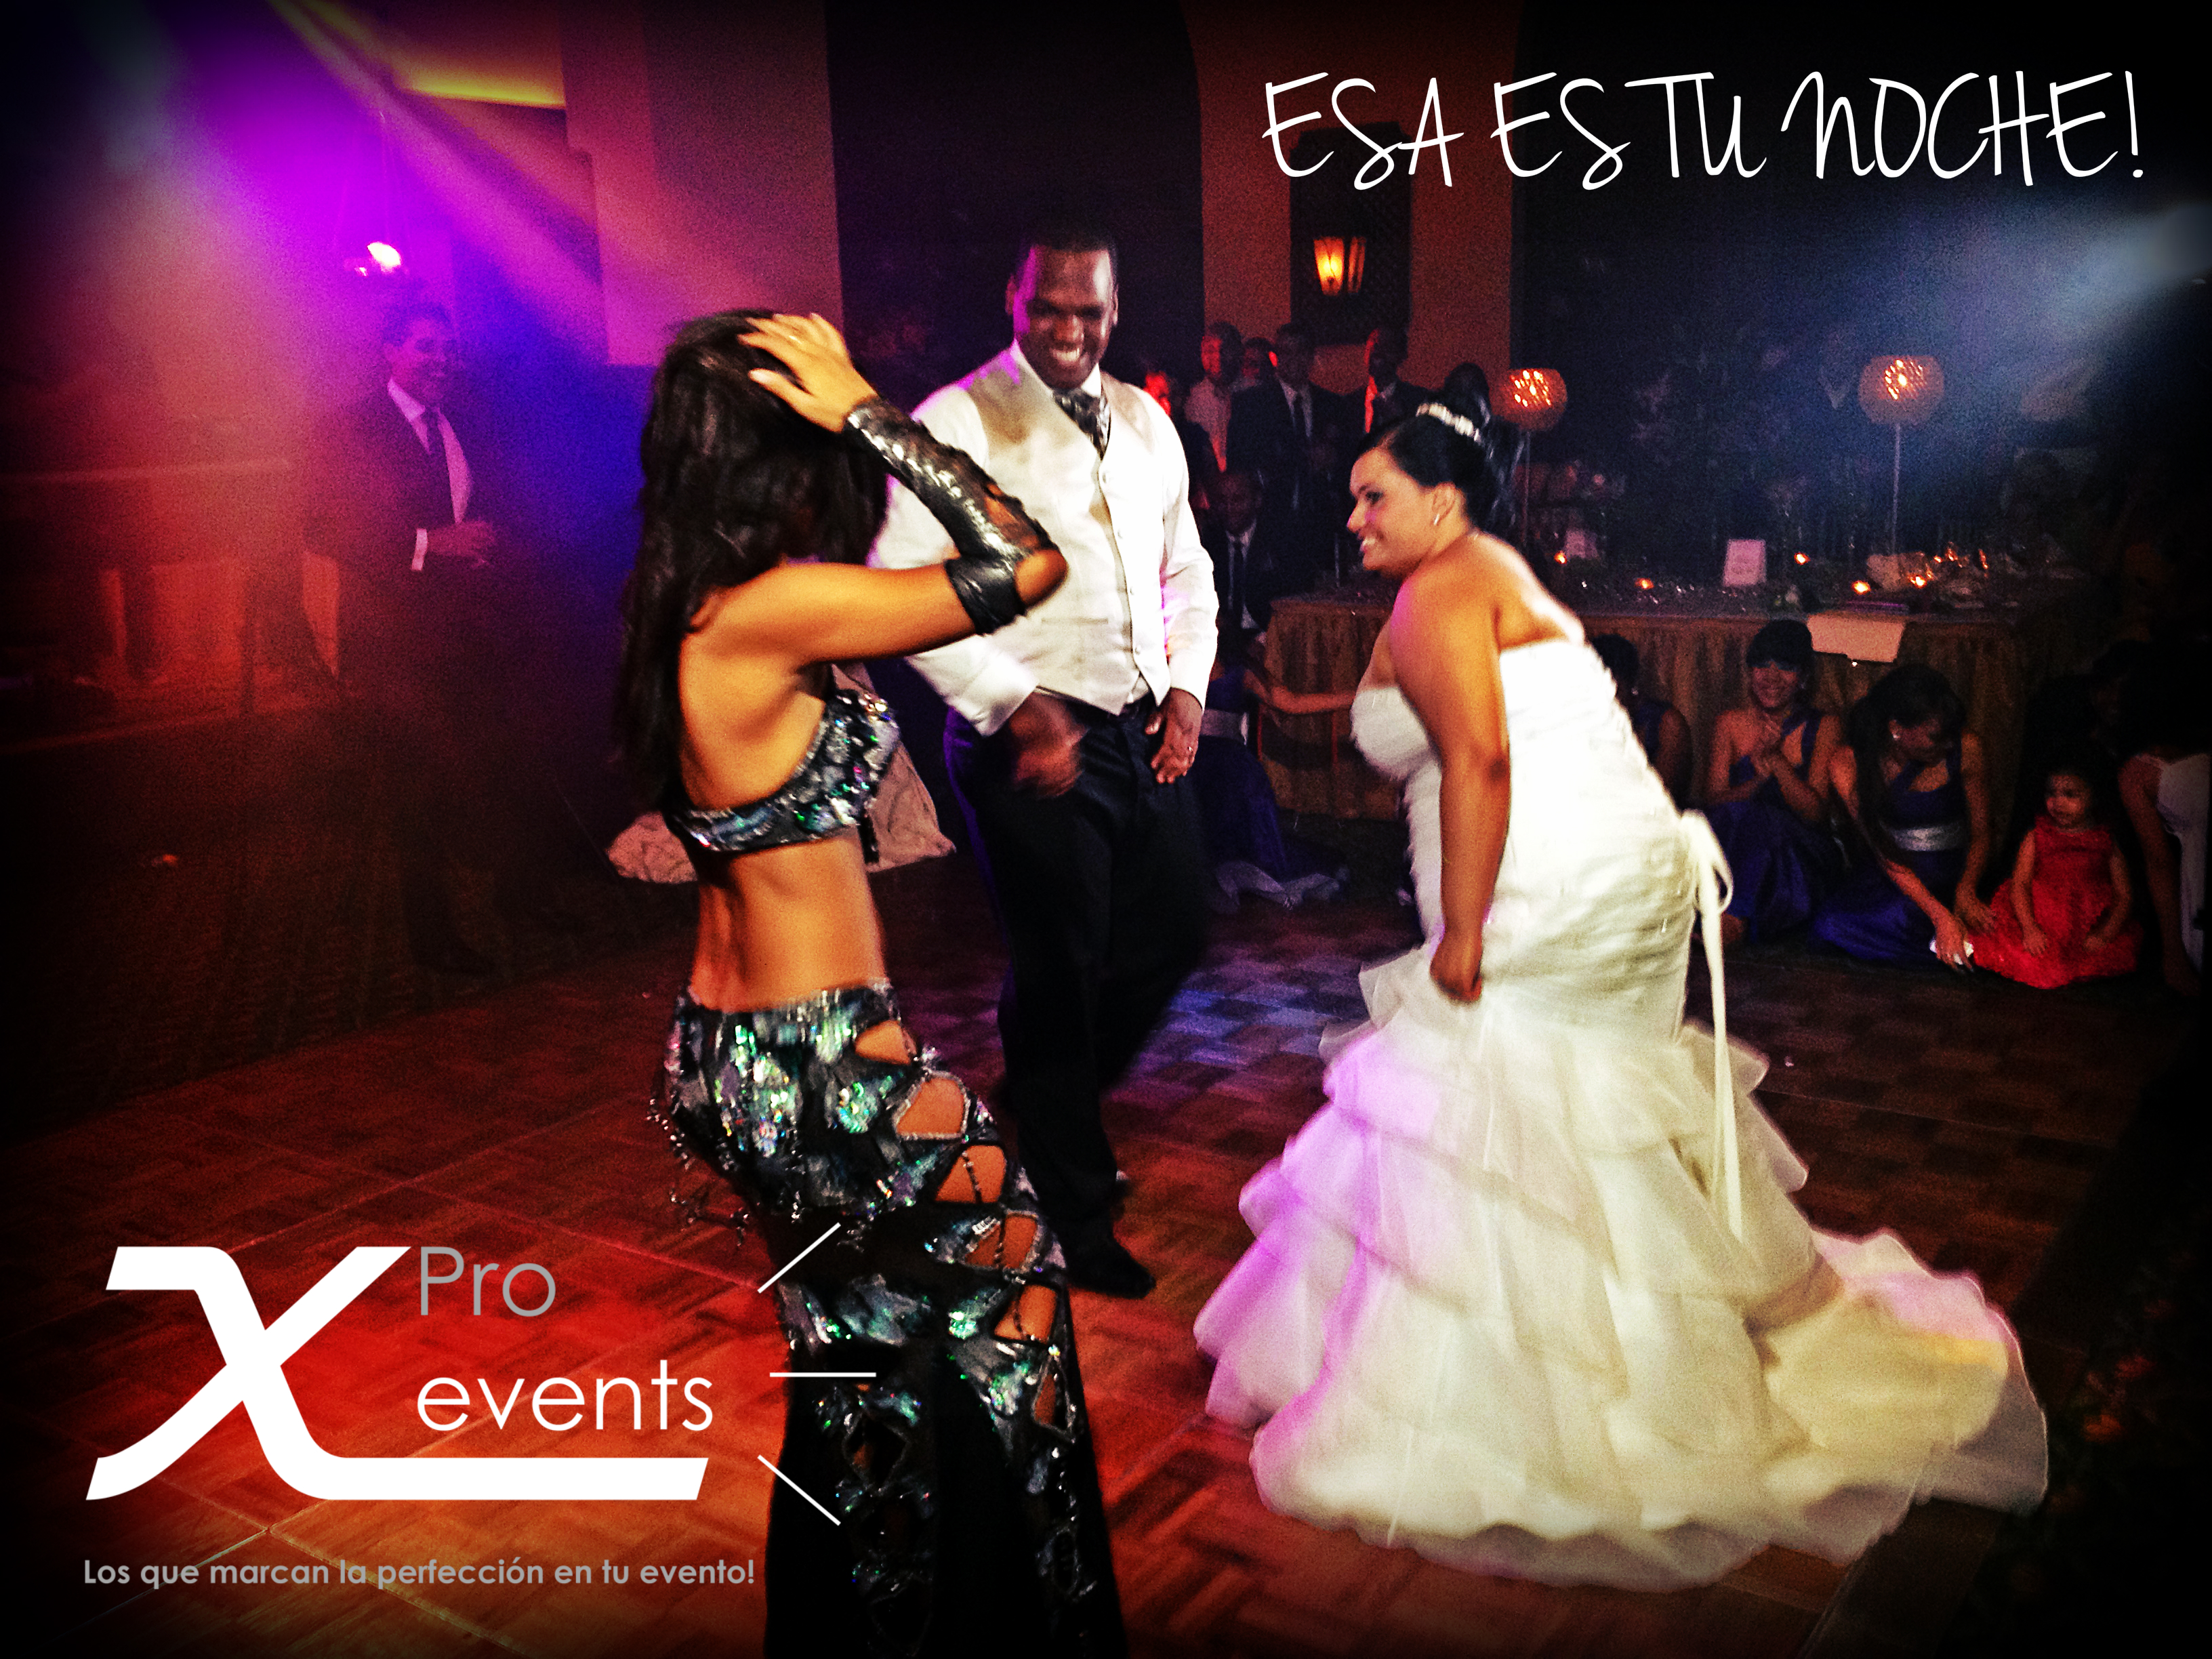 X Pro events  - 809-846-3784 - Bailarinas de Bellydance - Hotel Santo Domingo.JP